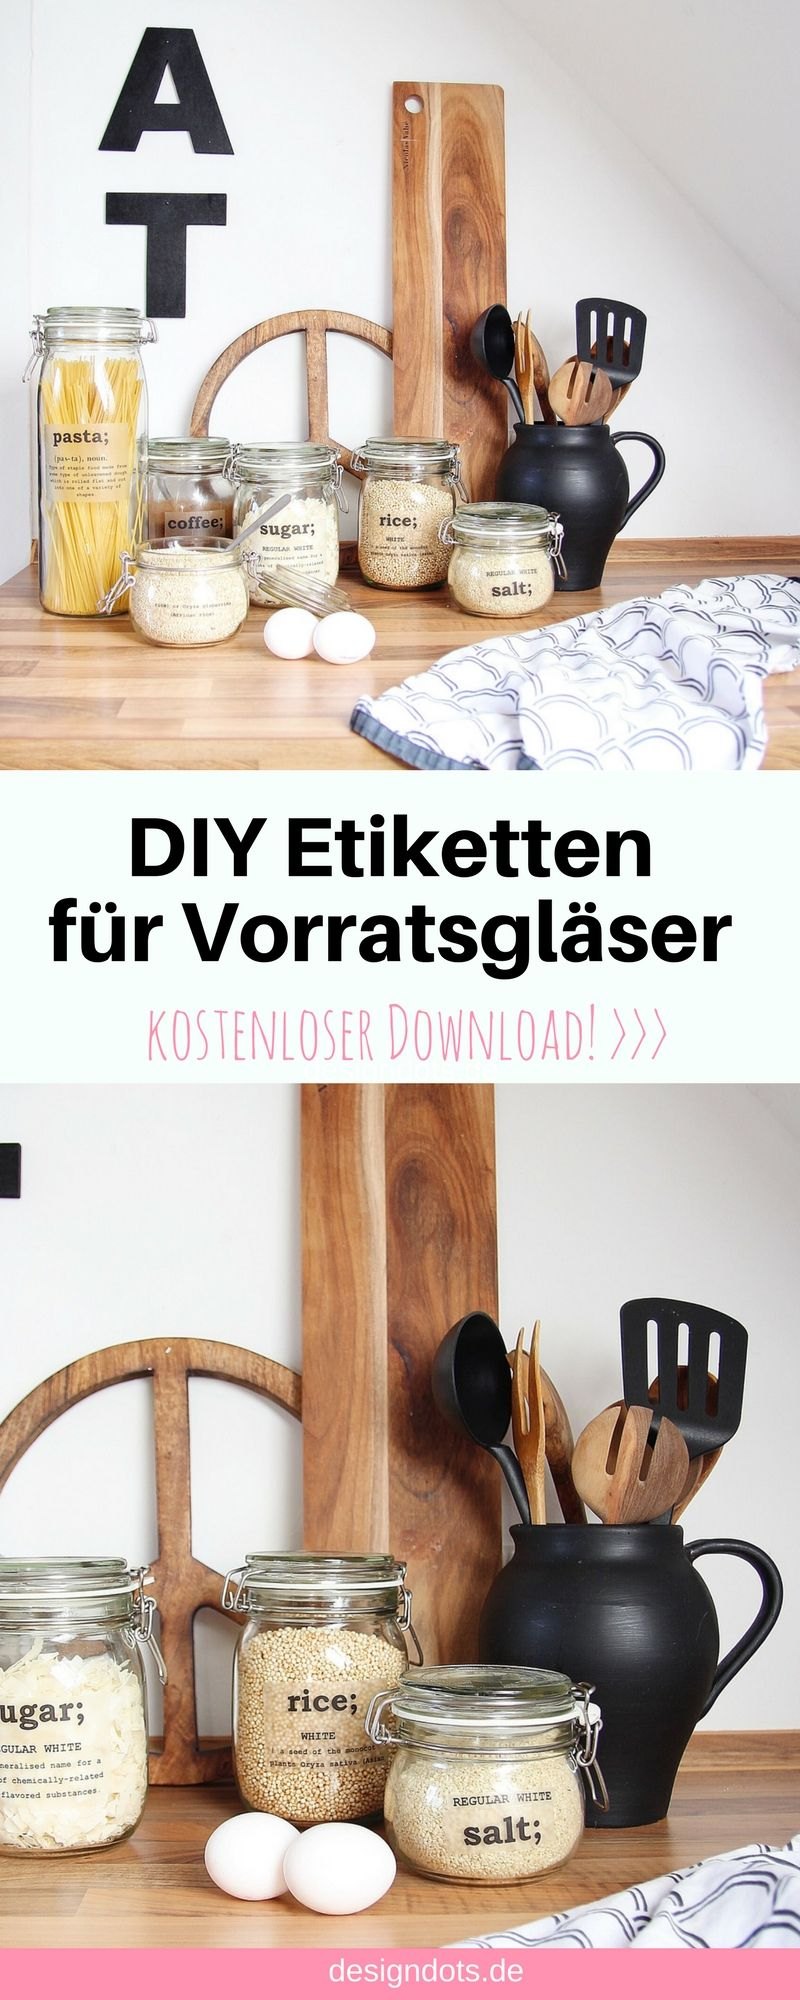 diy etiketten f r vorratsgl ser zum ausdrucken gute. Black Bedroom Furniture Sets. Home Design Ideas